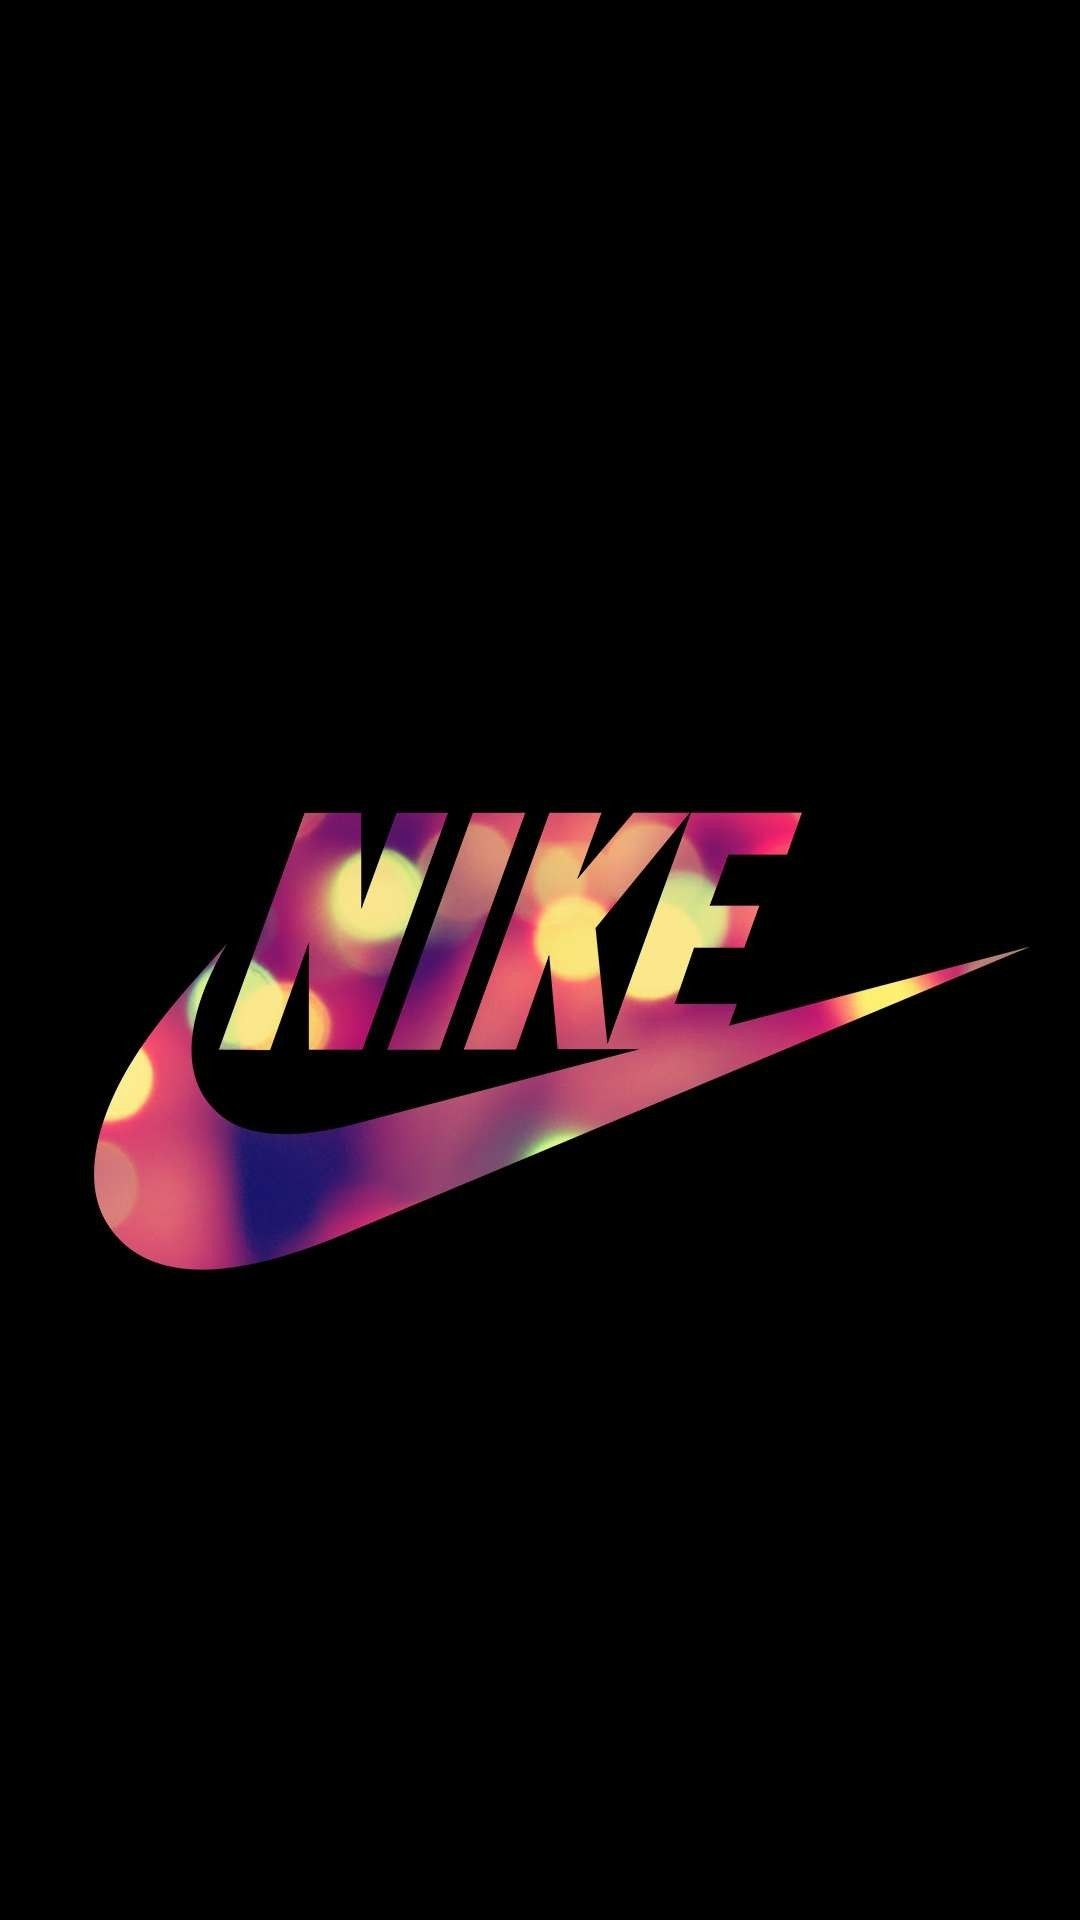 Nike Air Wallpapers 66 Background Pictures